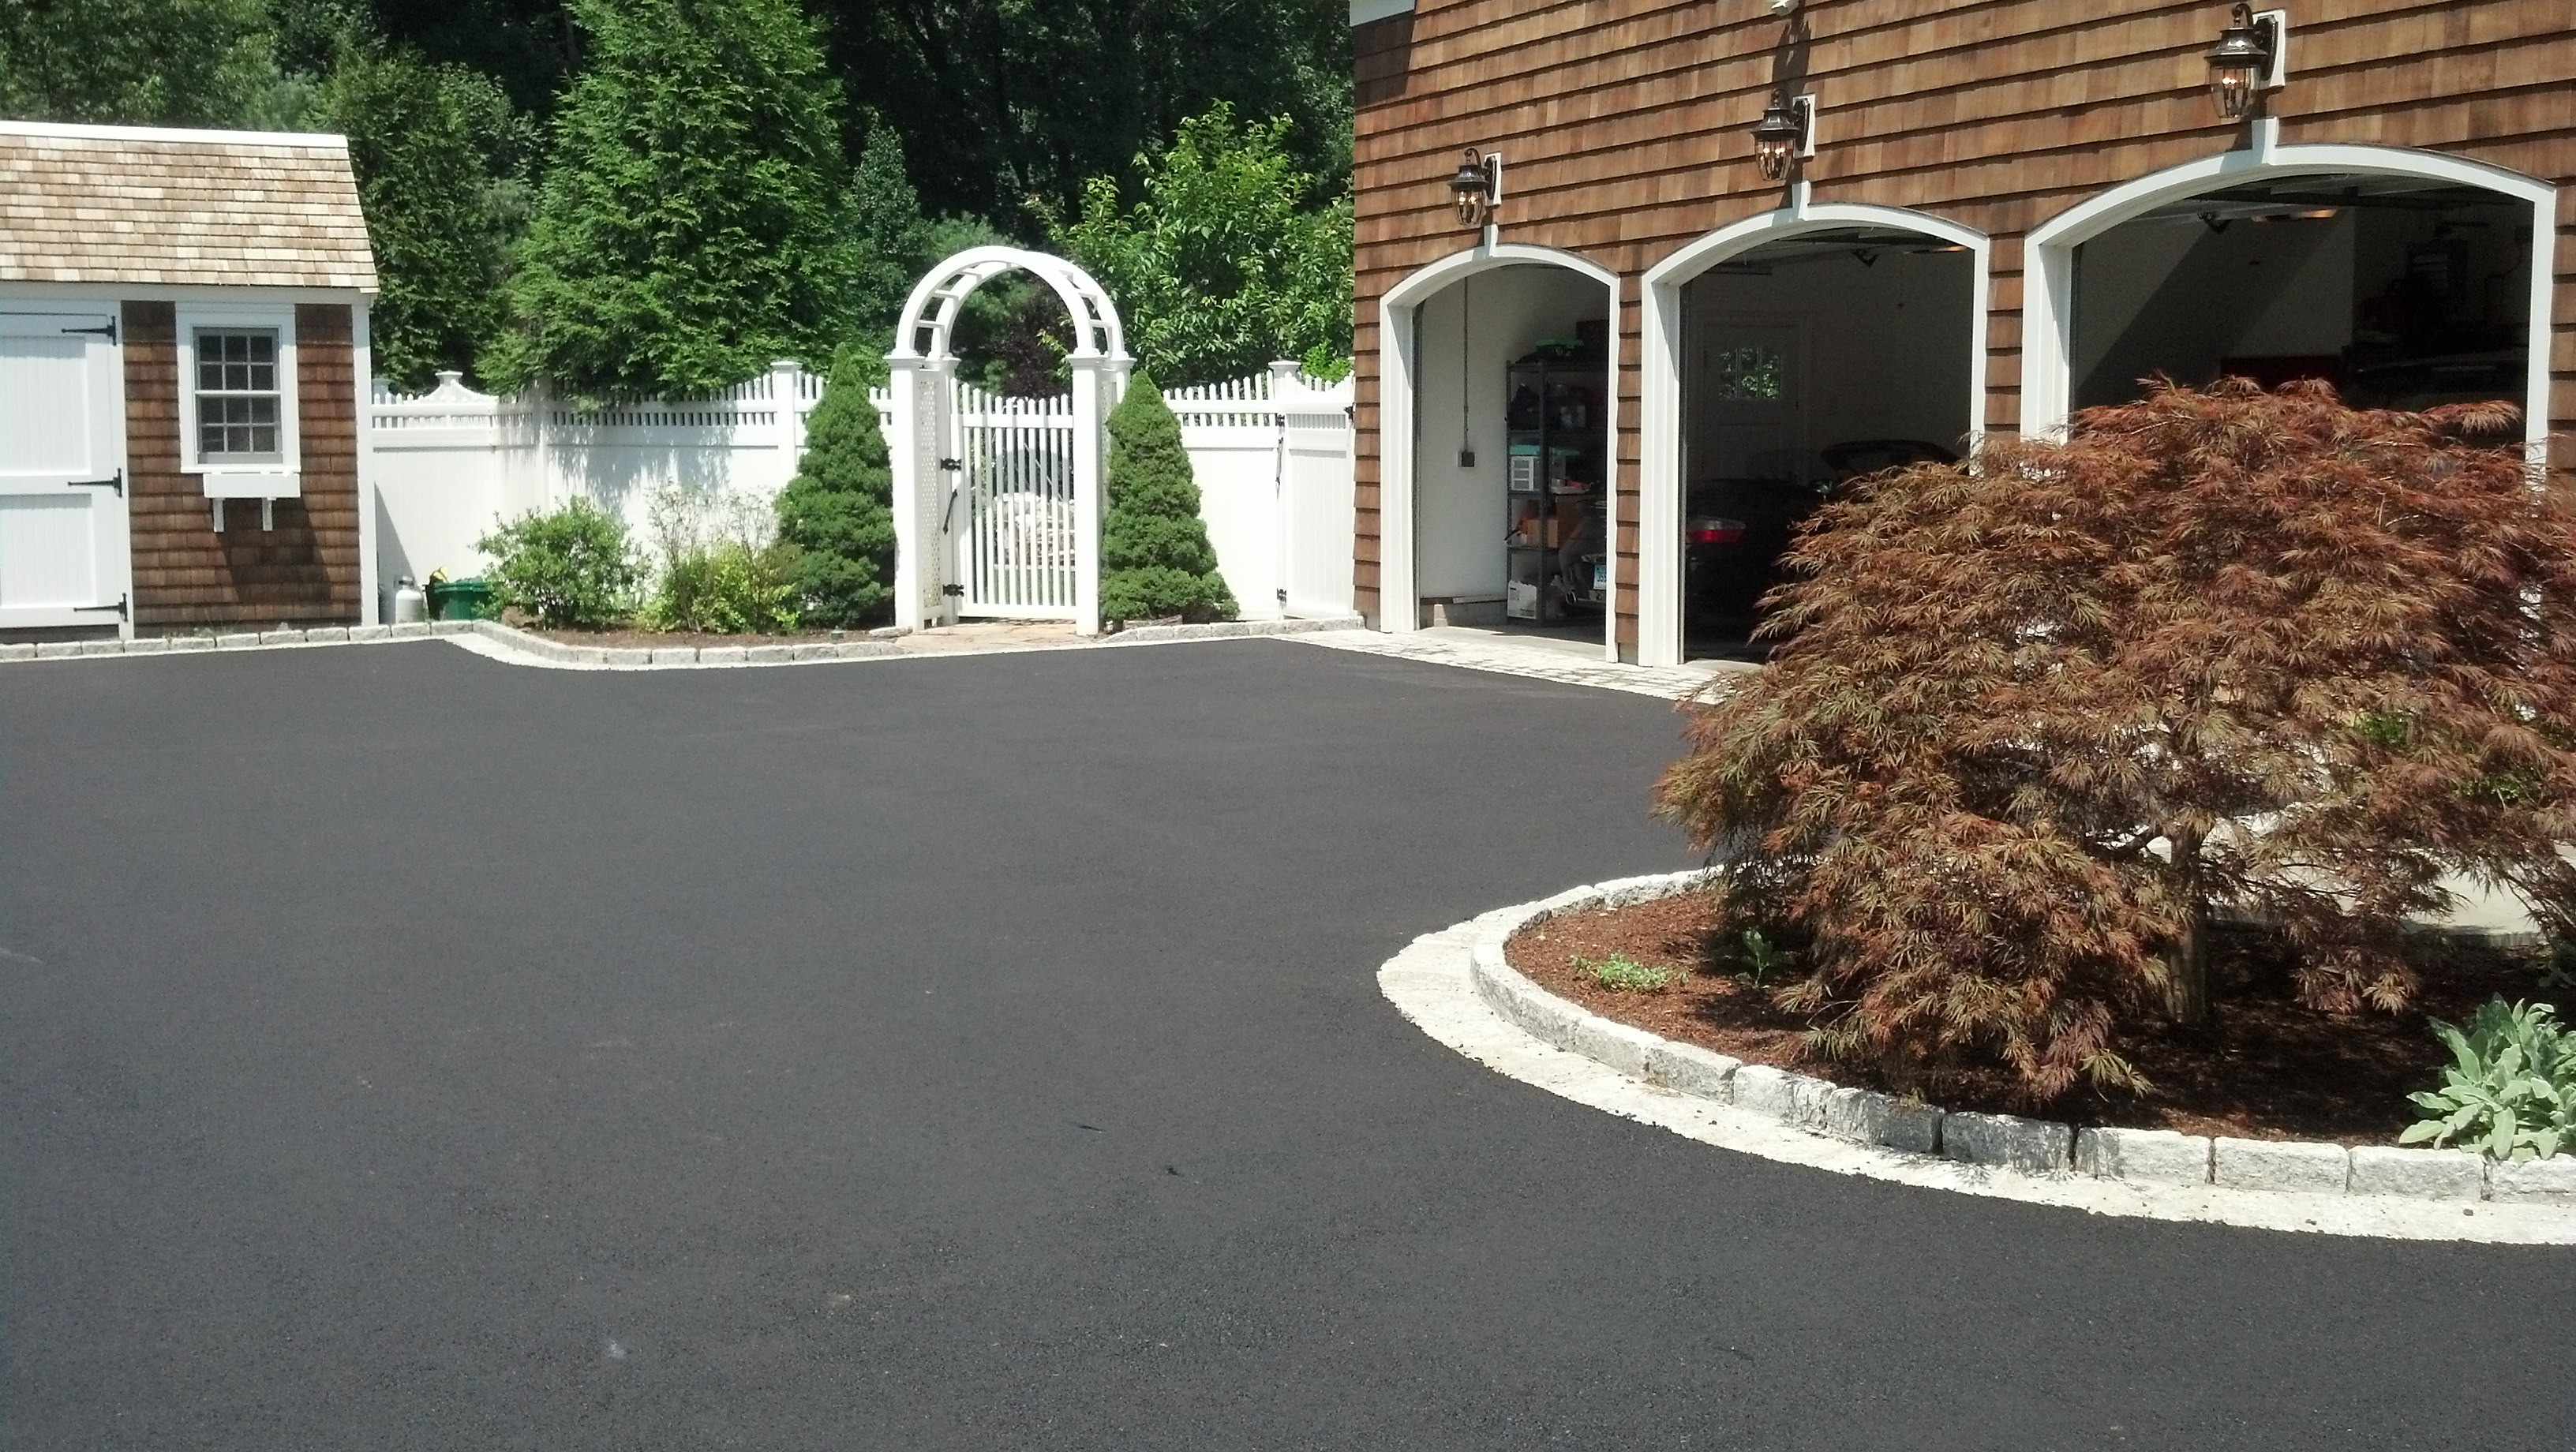 New Driveway for New Canaan Client Asphalt Paving pany Serving CT